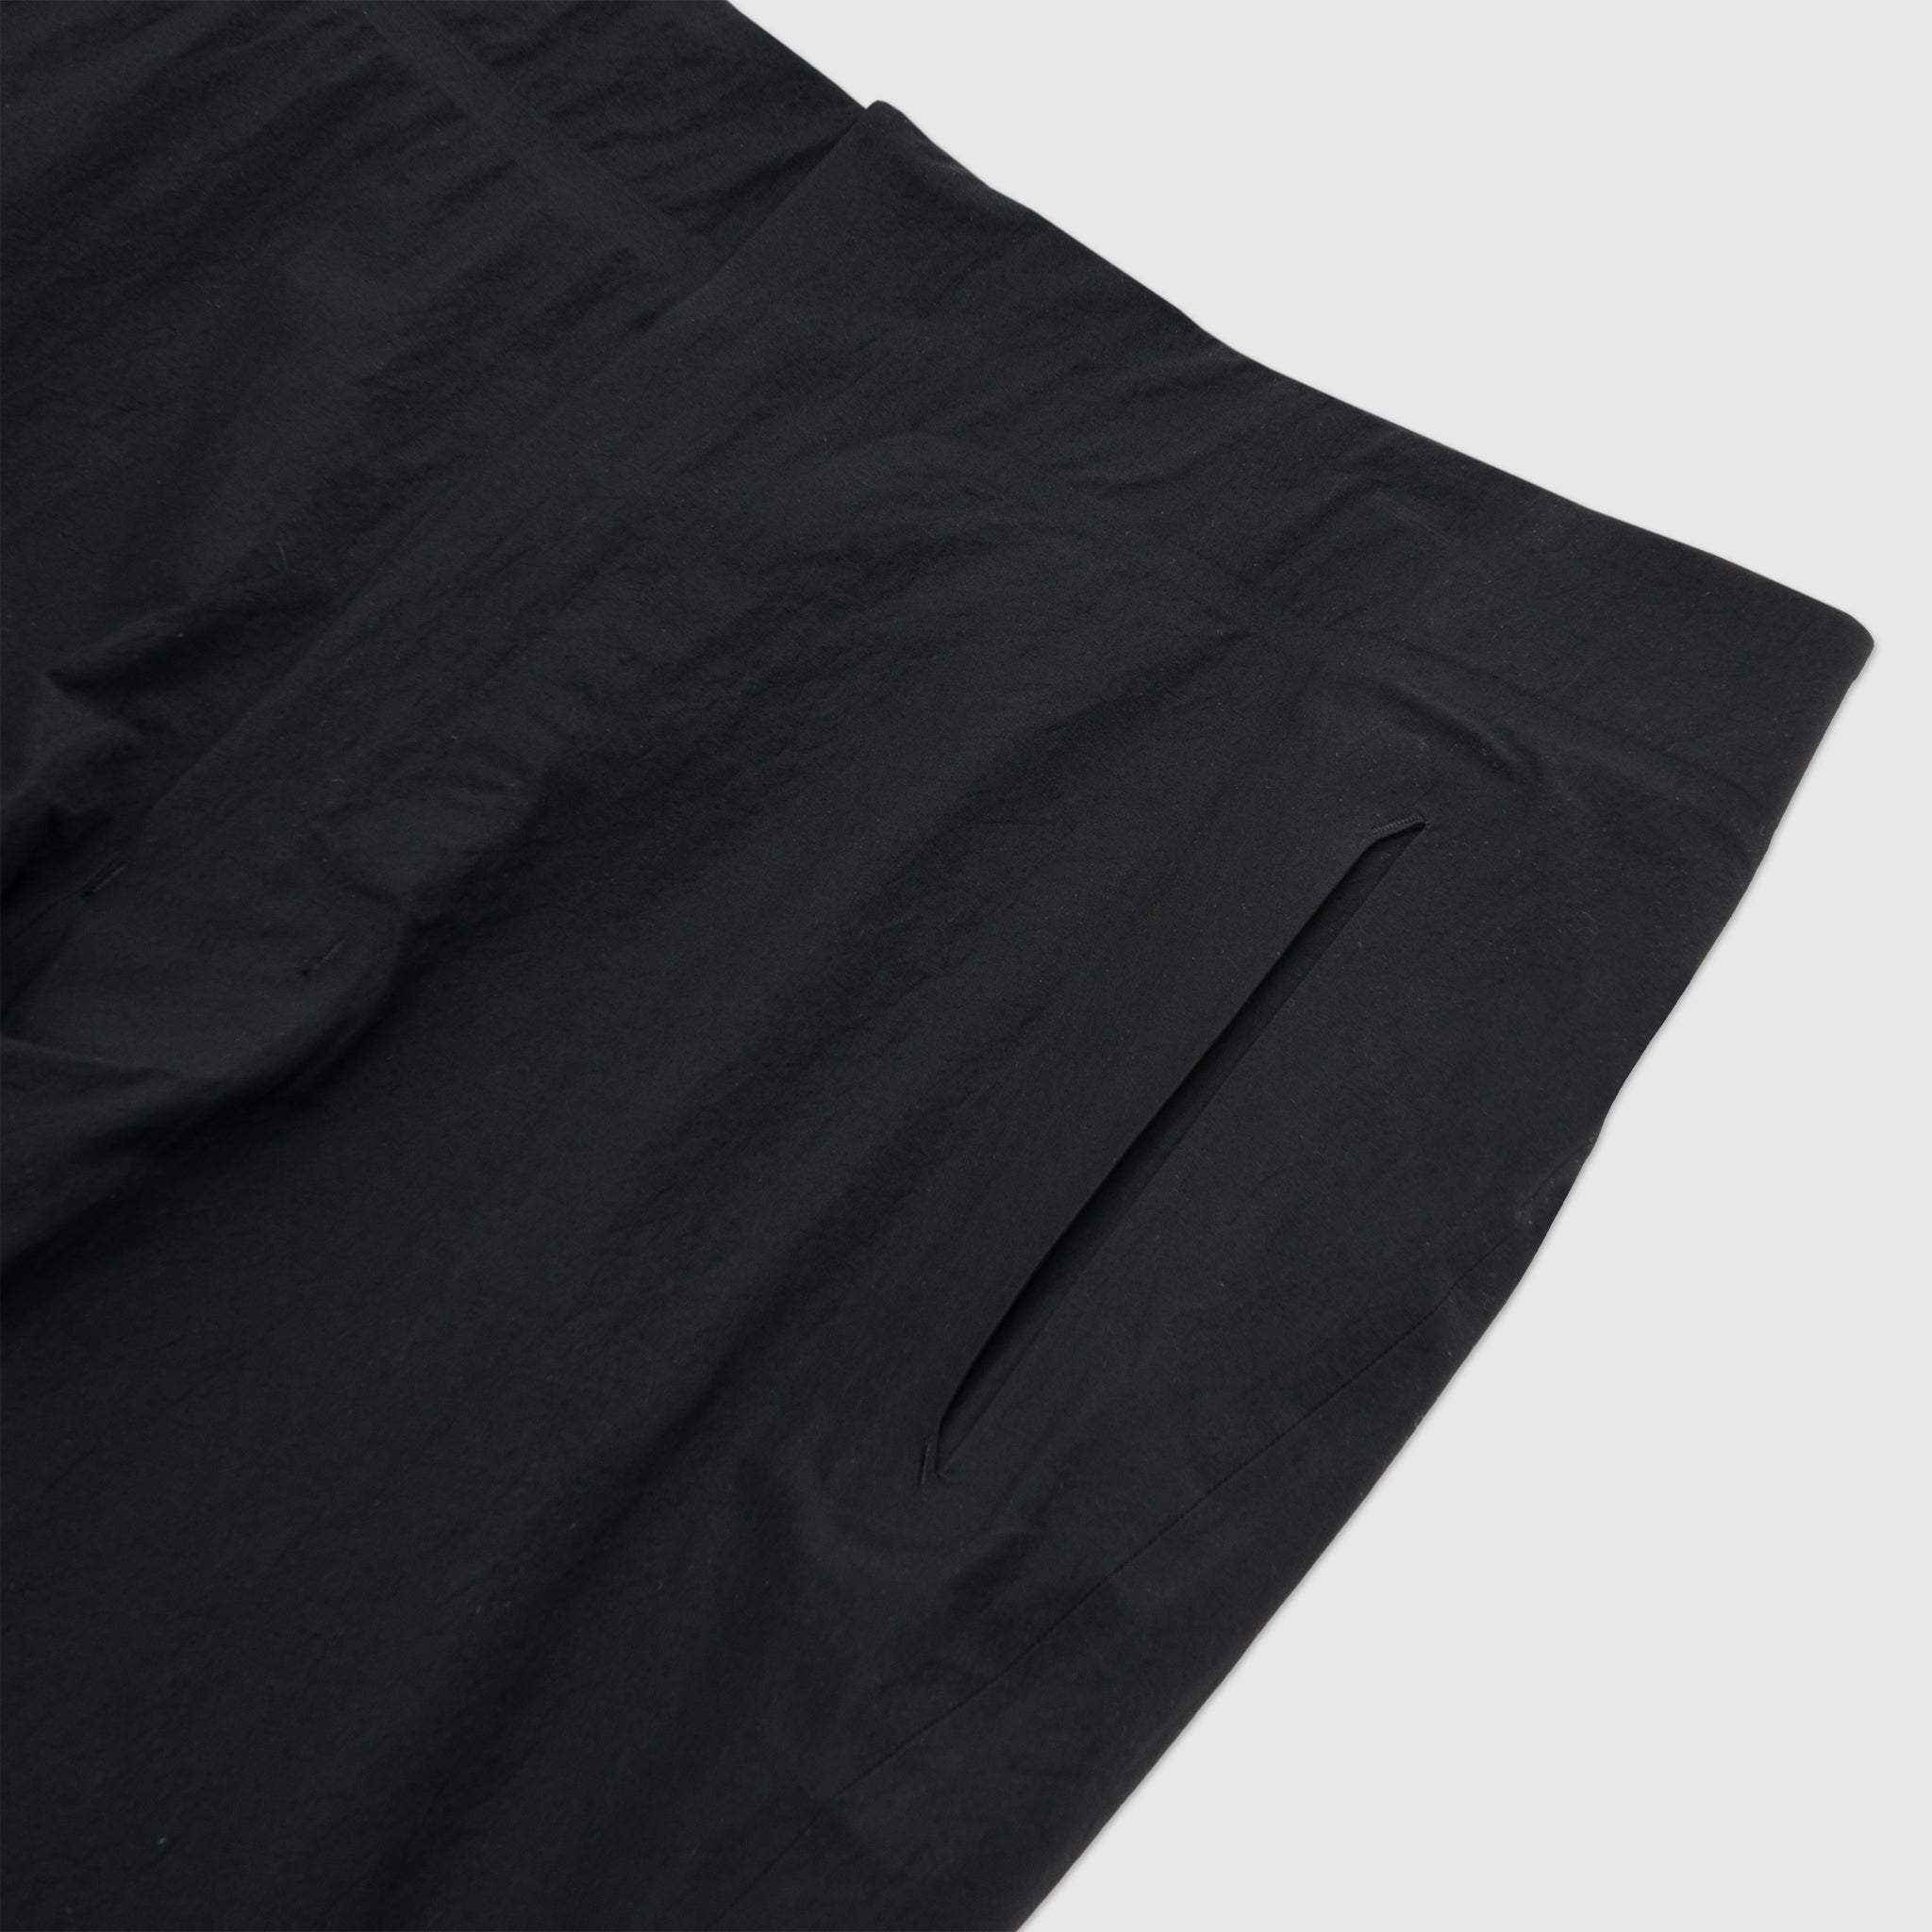 DESCENTE LAYERED GAITER RELAXED FIT PANTS